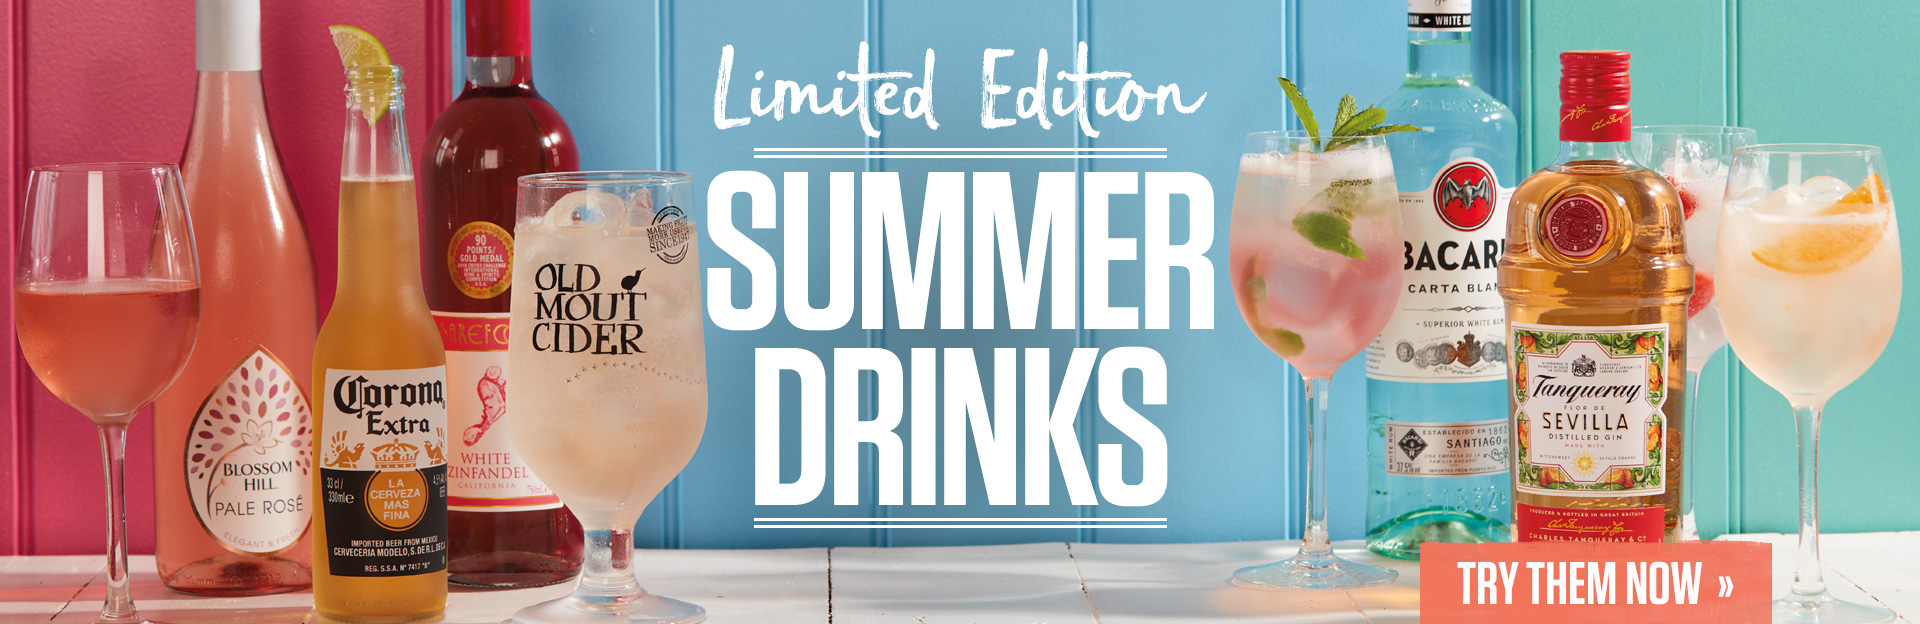 Summer Drinks at The Tyburn House